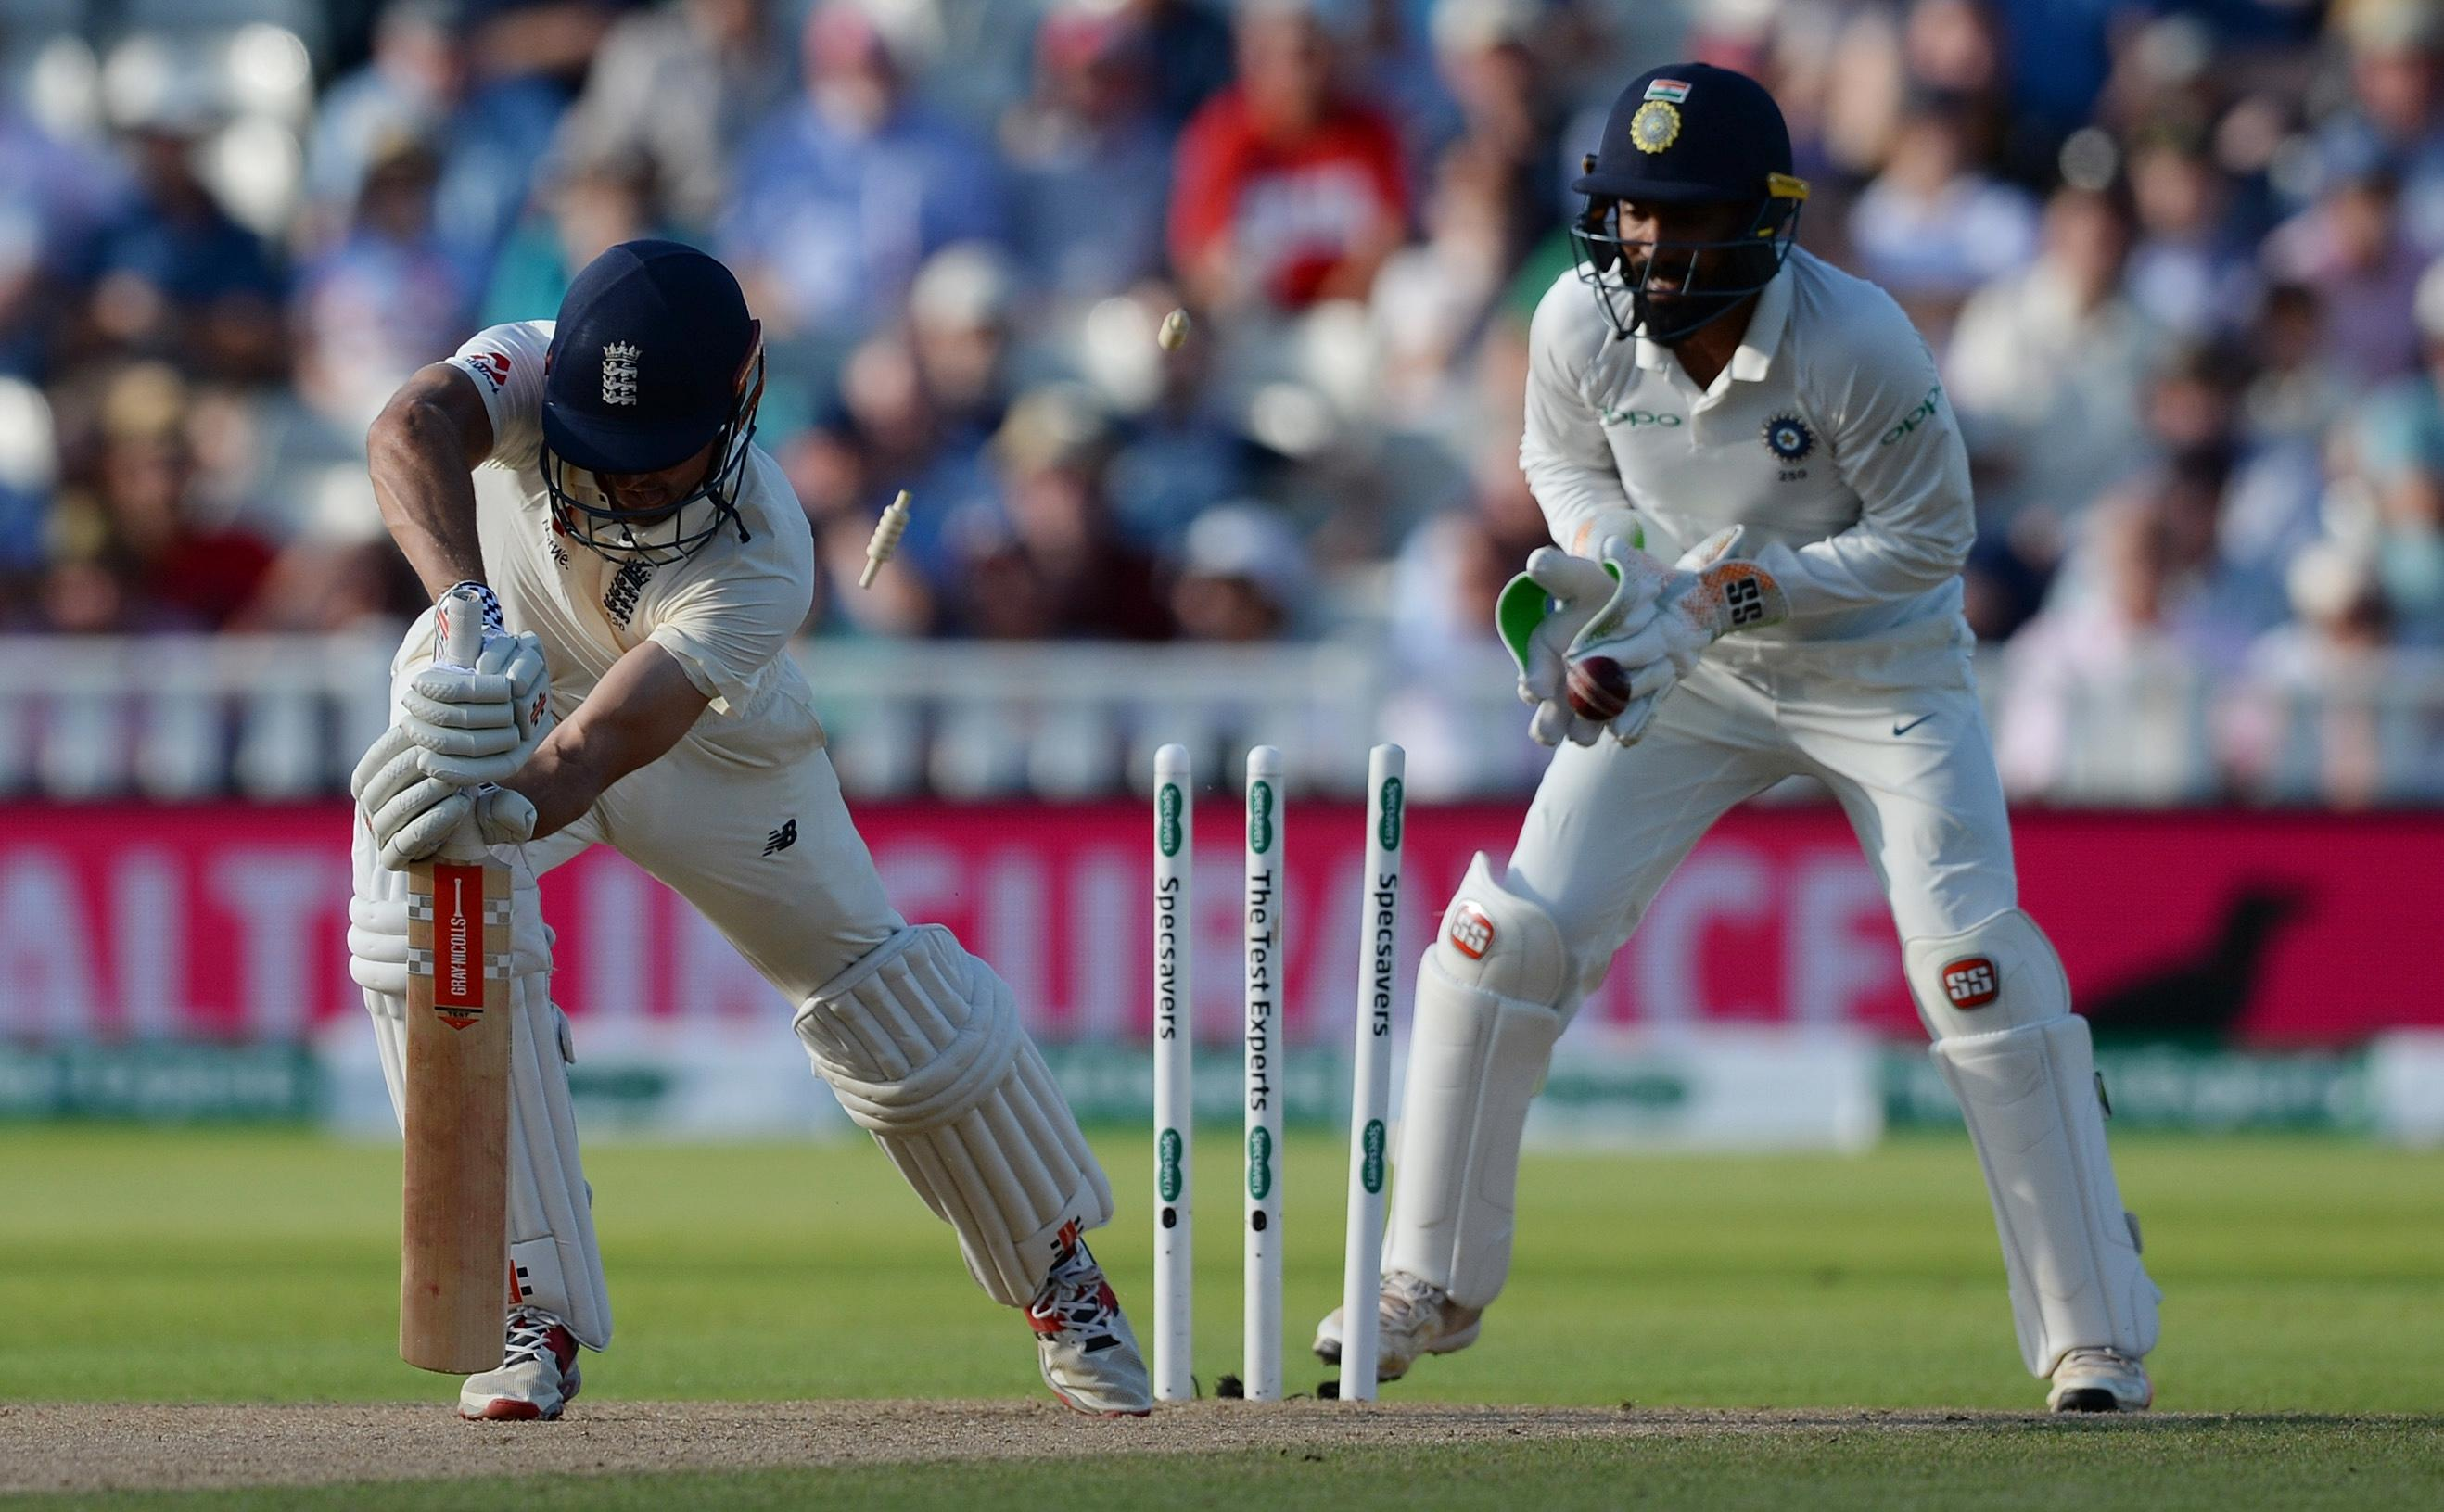 Alastair Cook was bowled for a duck as India took a crucial late wicket